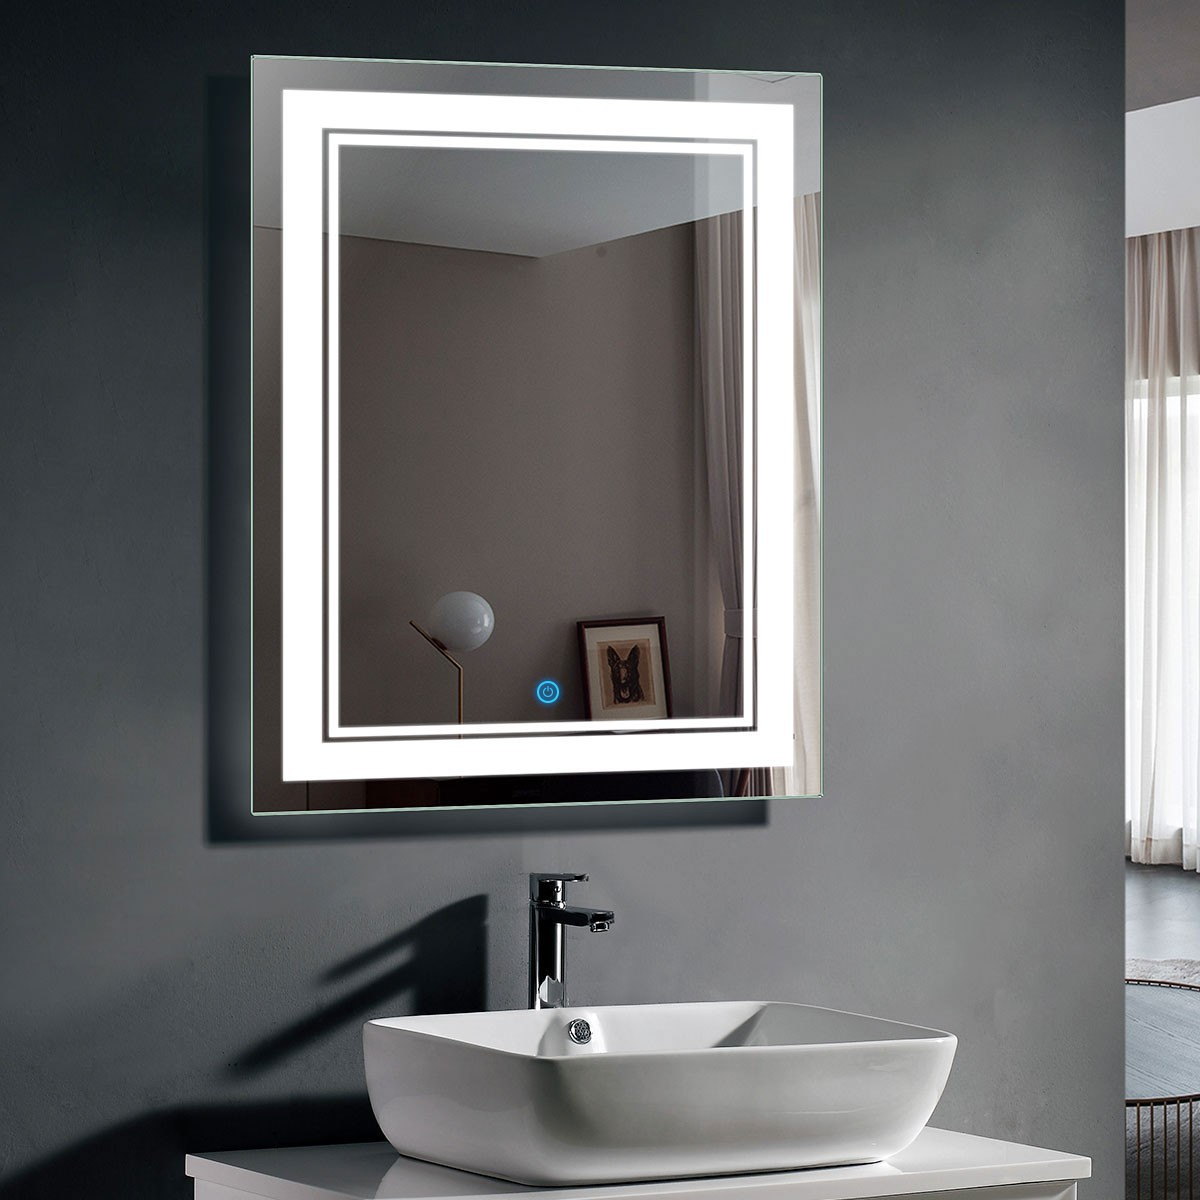 28 x 36 In Vertical LED Bathroom Mirror with Touch Button (DK-OD-CK160-I)